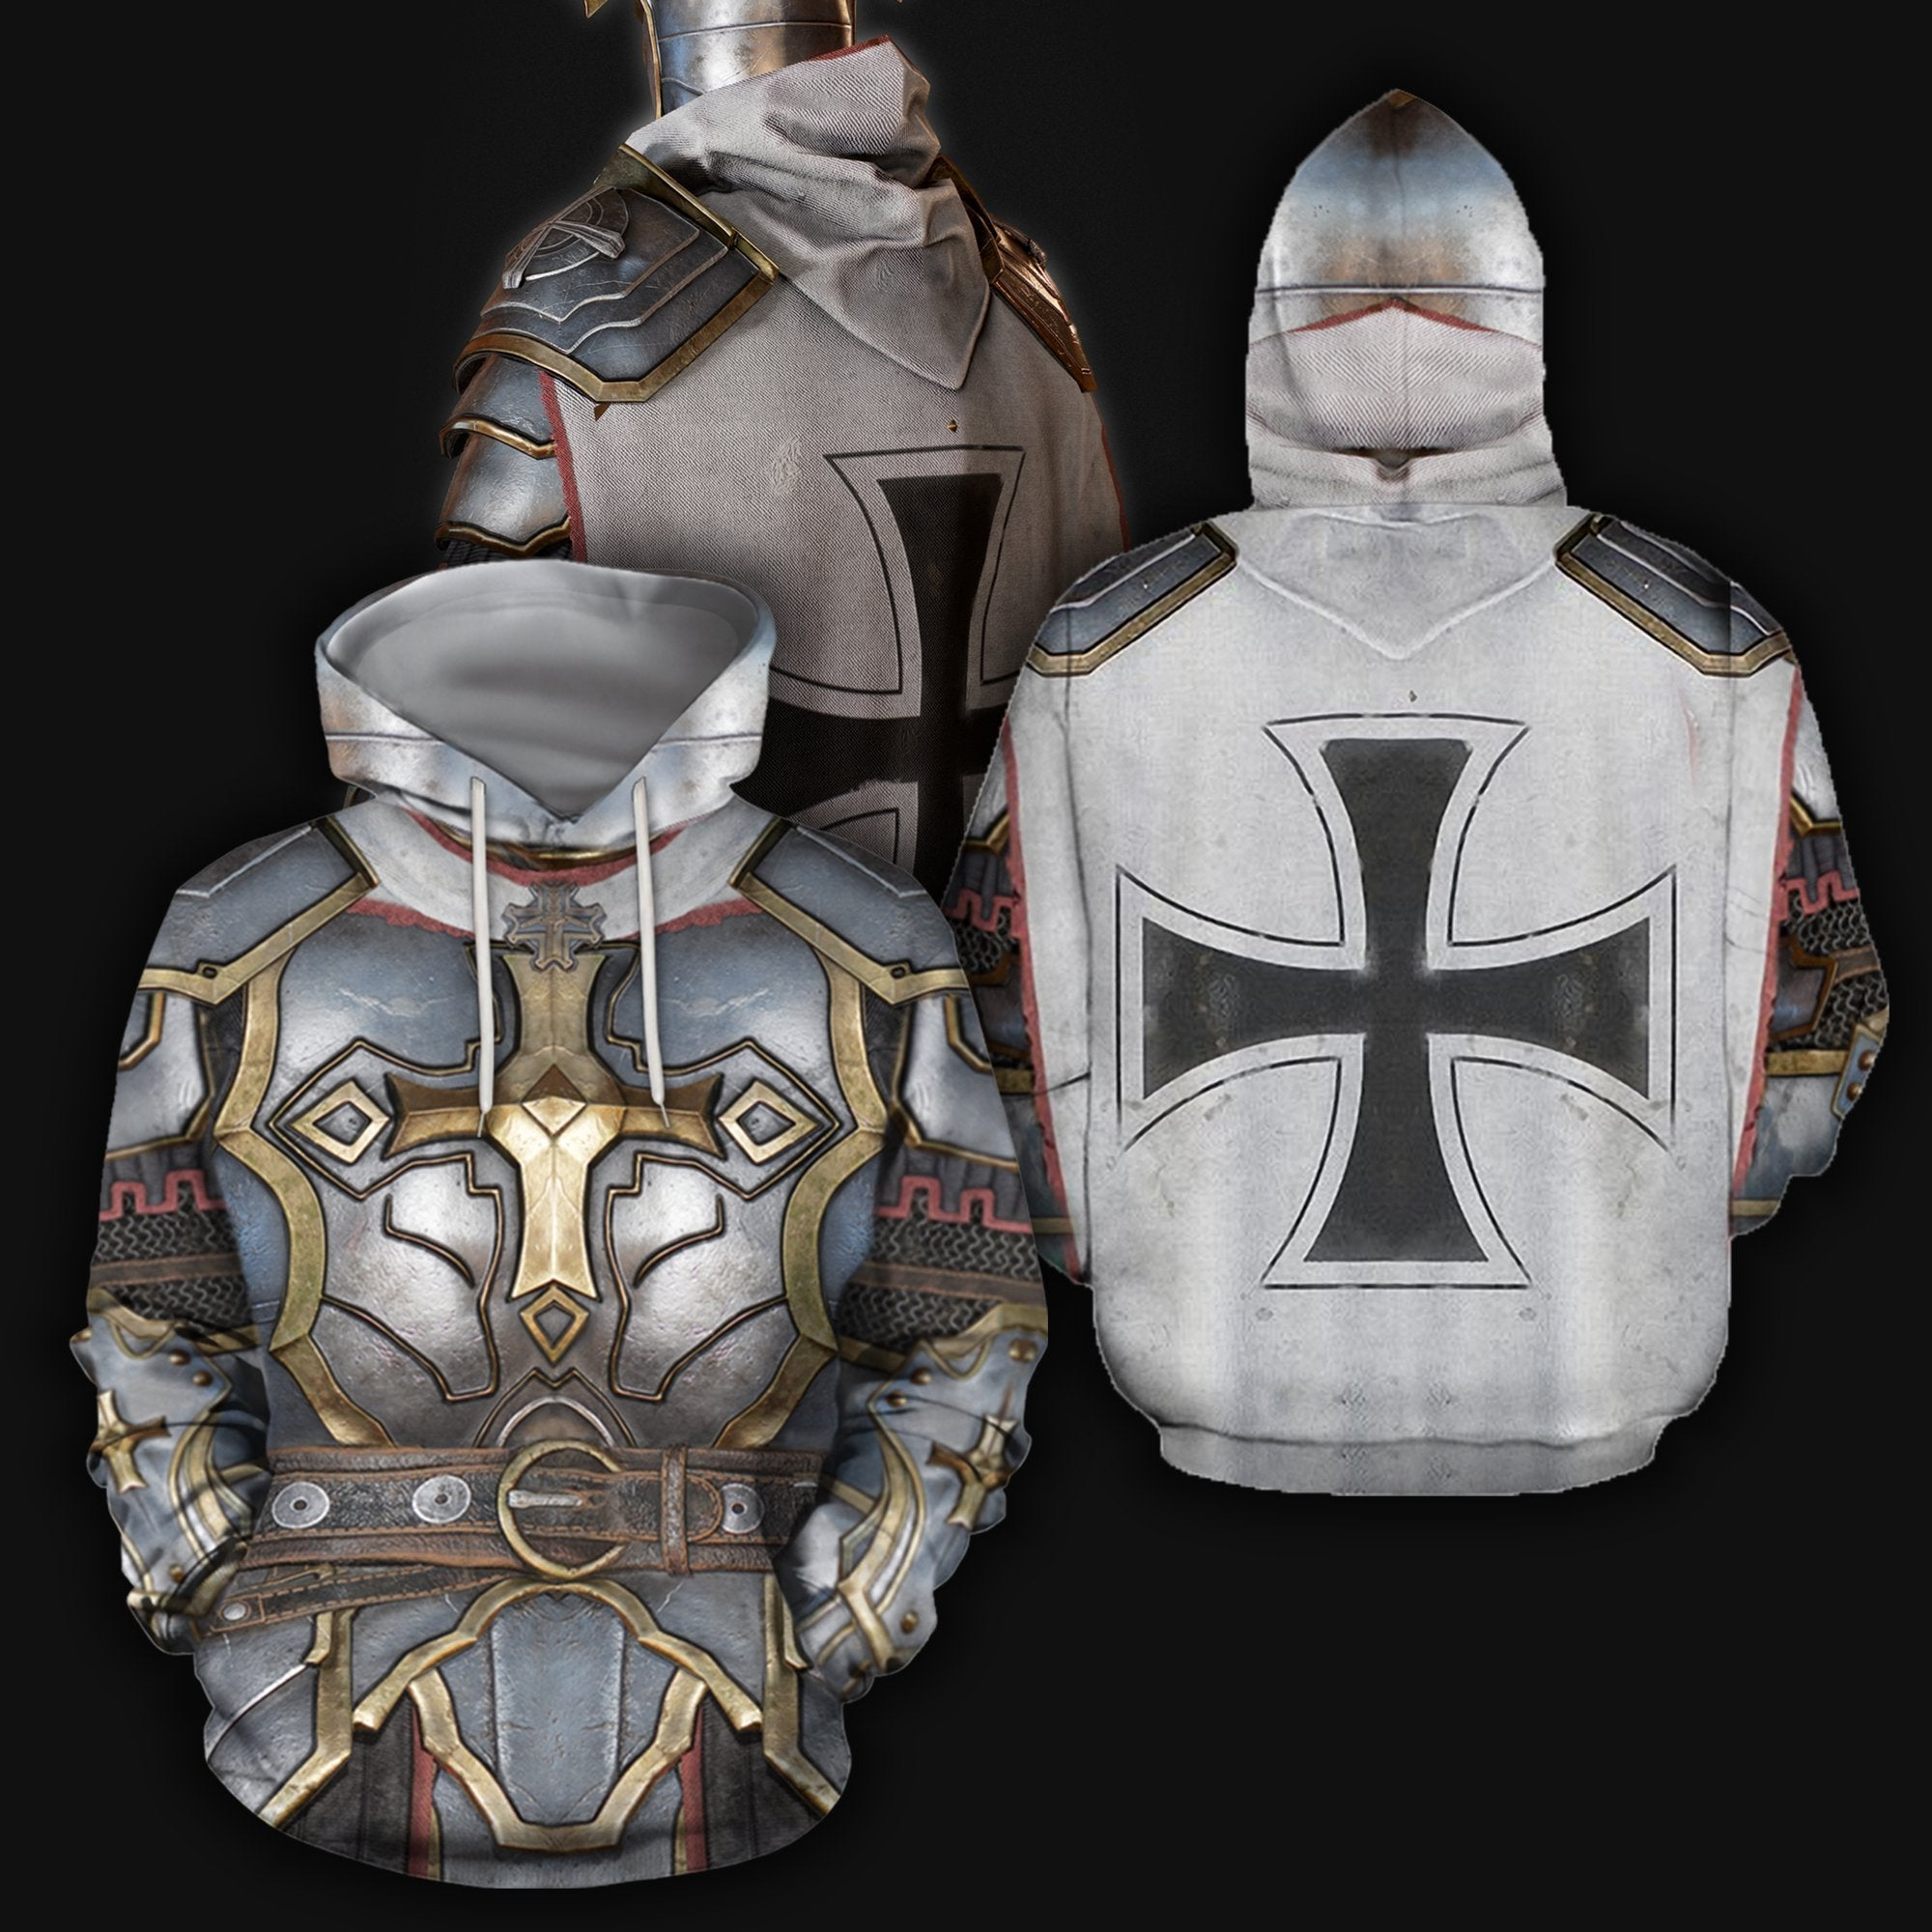 3D All Over Printed Knight Templar Tops - Amaze Style™-Apparel